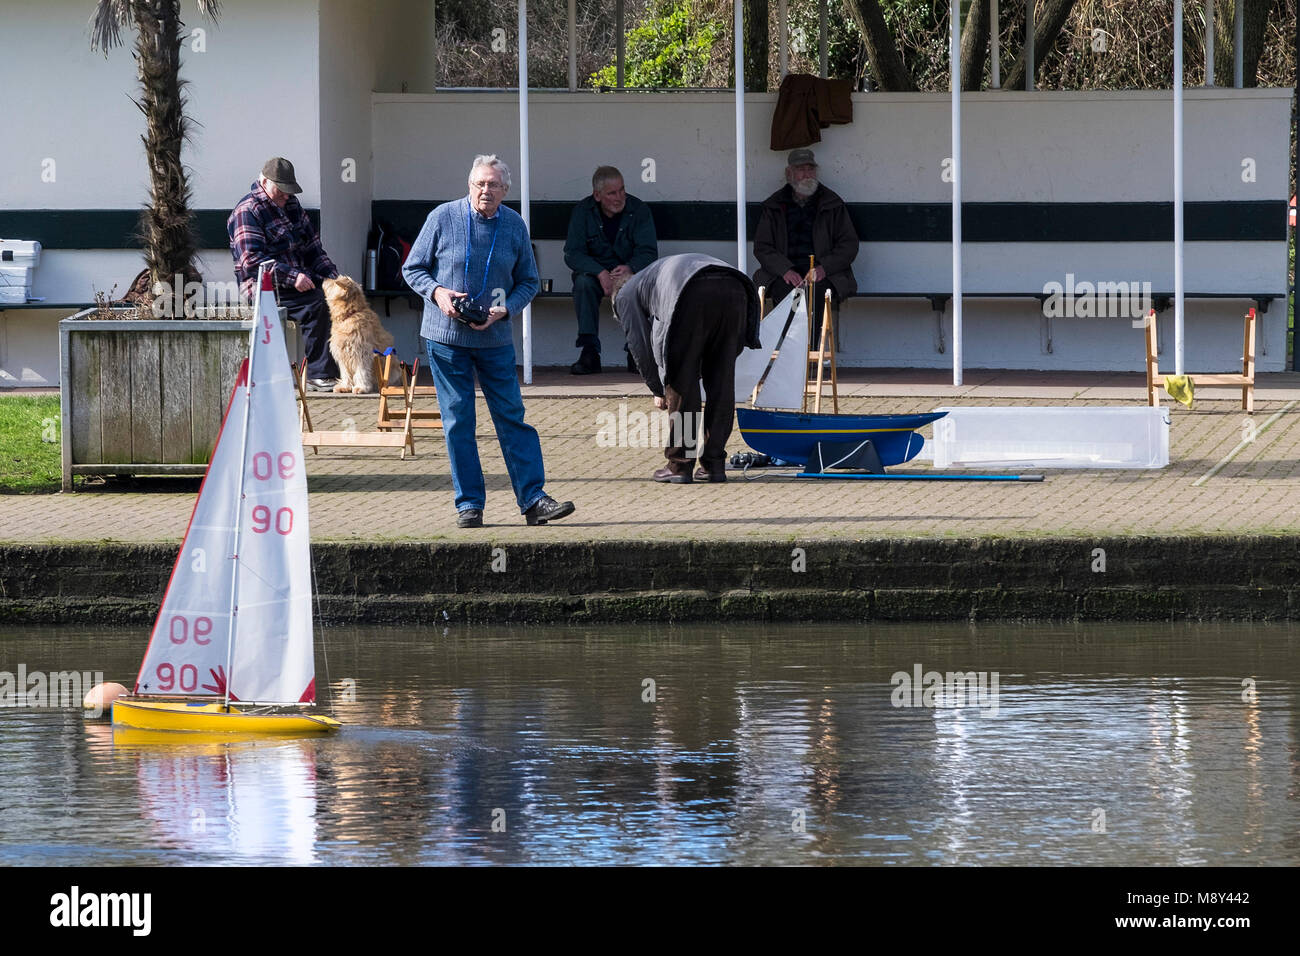 A member of the Newquay Model Yacht Club at Trenance Boating Lake controlling his model racing yacht Newquay Cornwall. - Stock Image